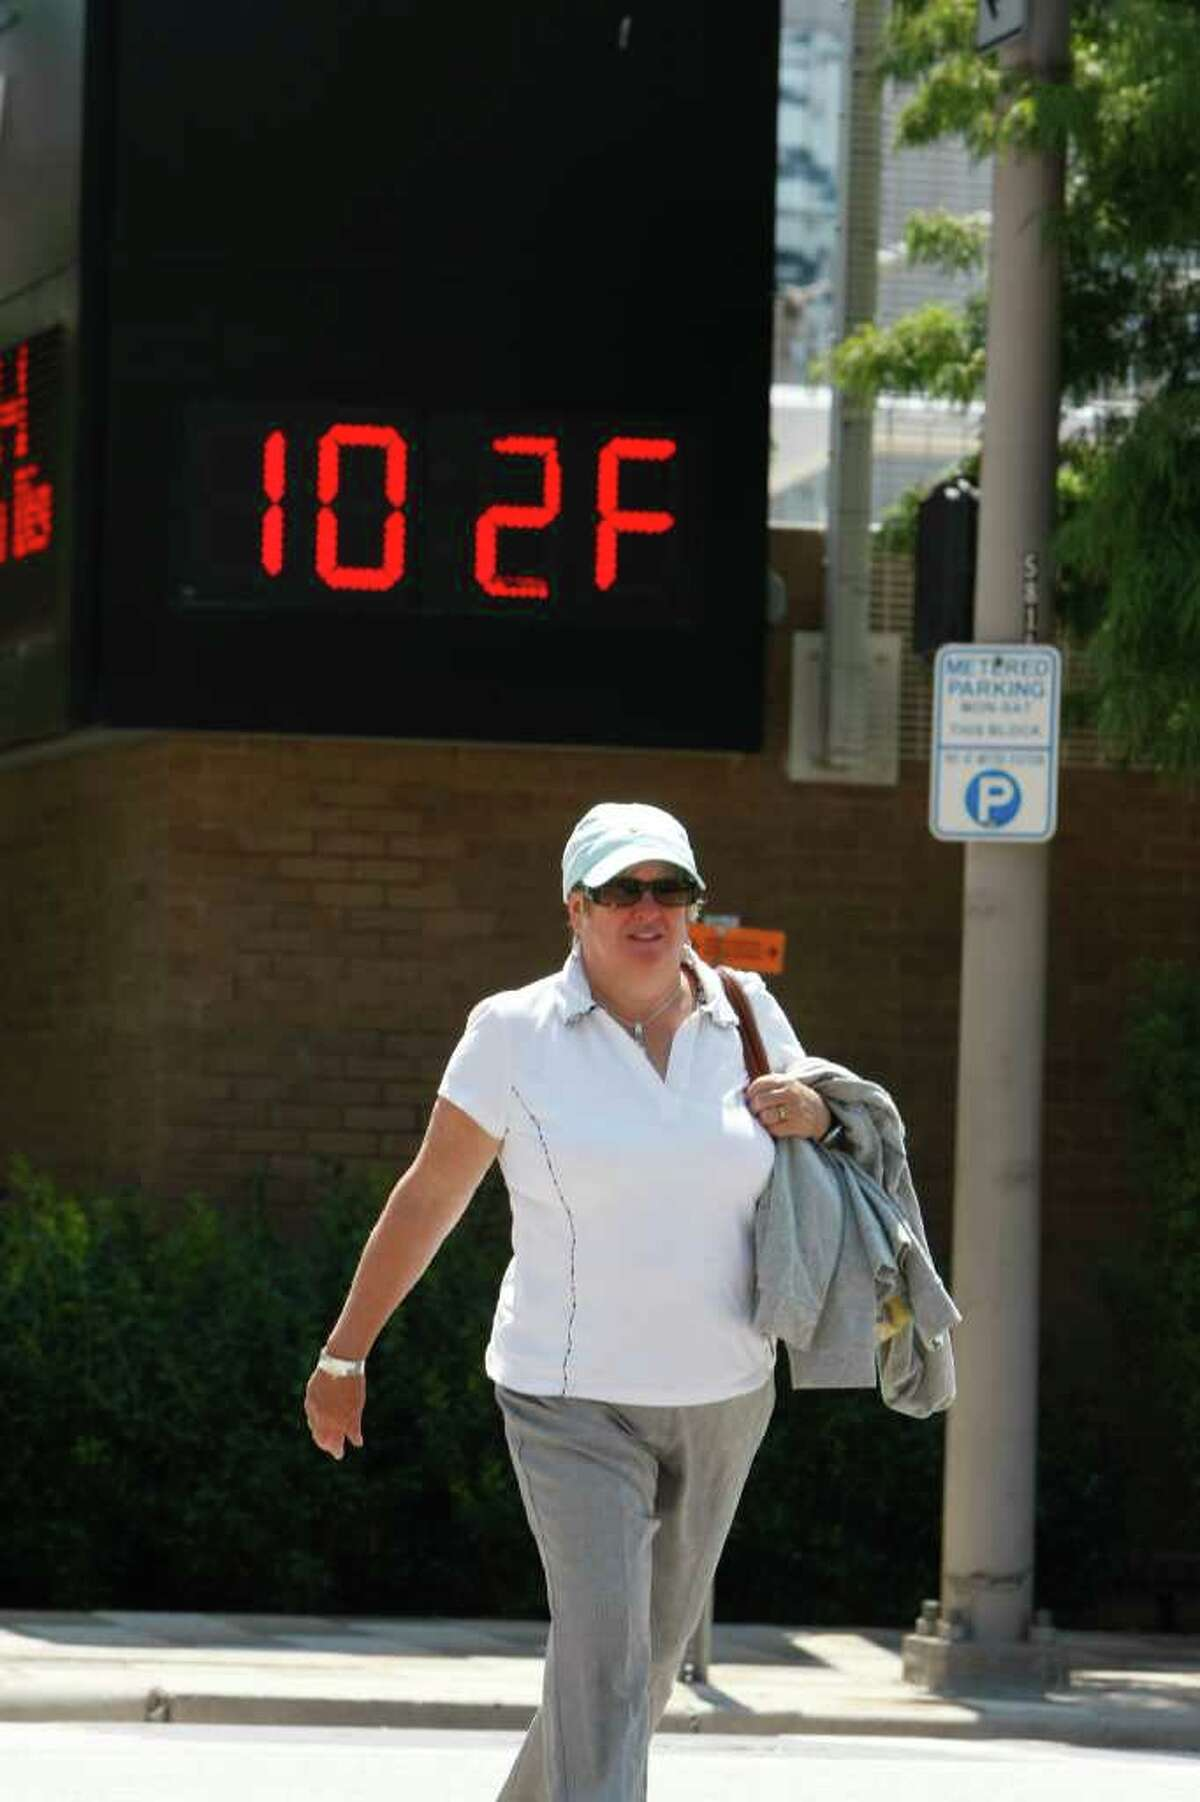 Jill Gardener, of Victoria, British Columbia, now has photographic proof of our heat wave for her friends back home.